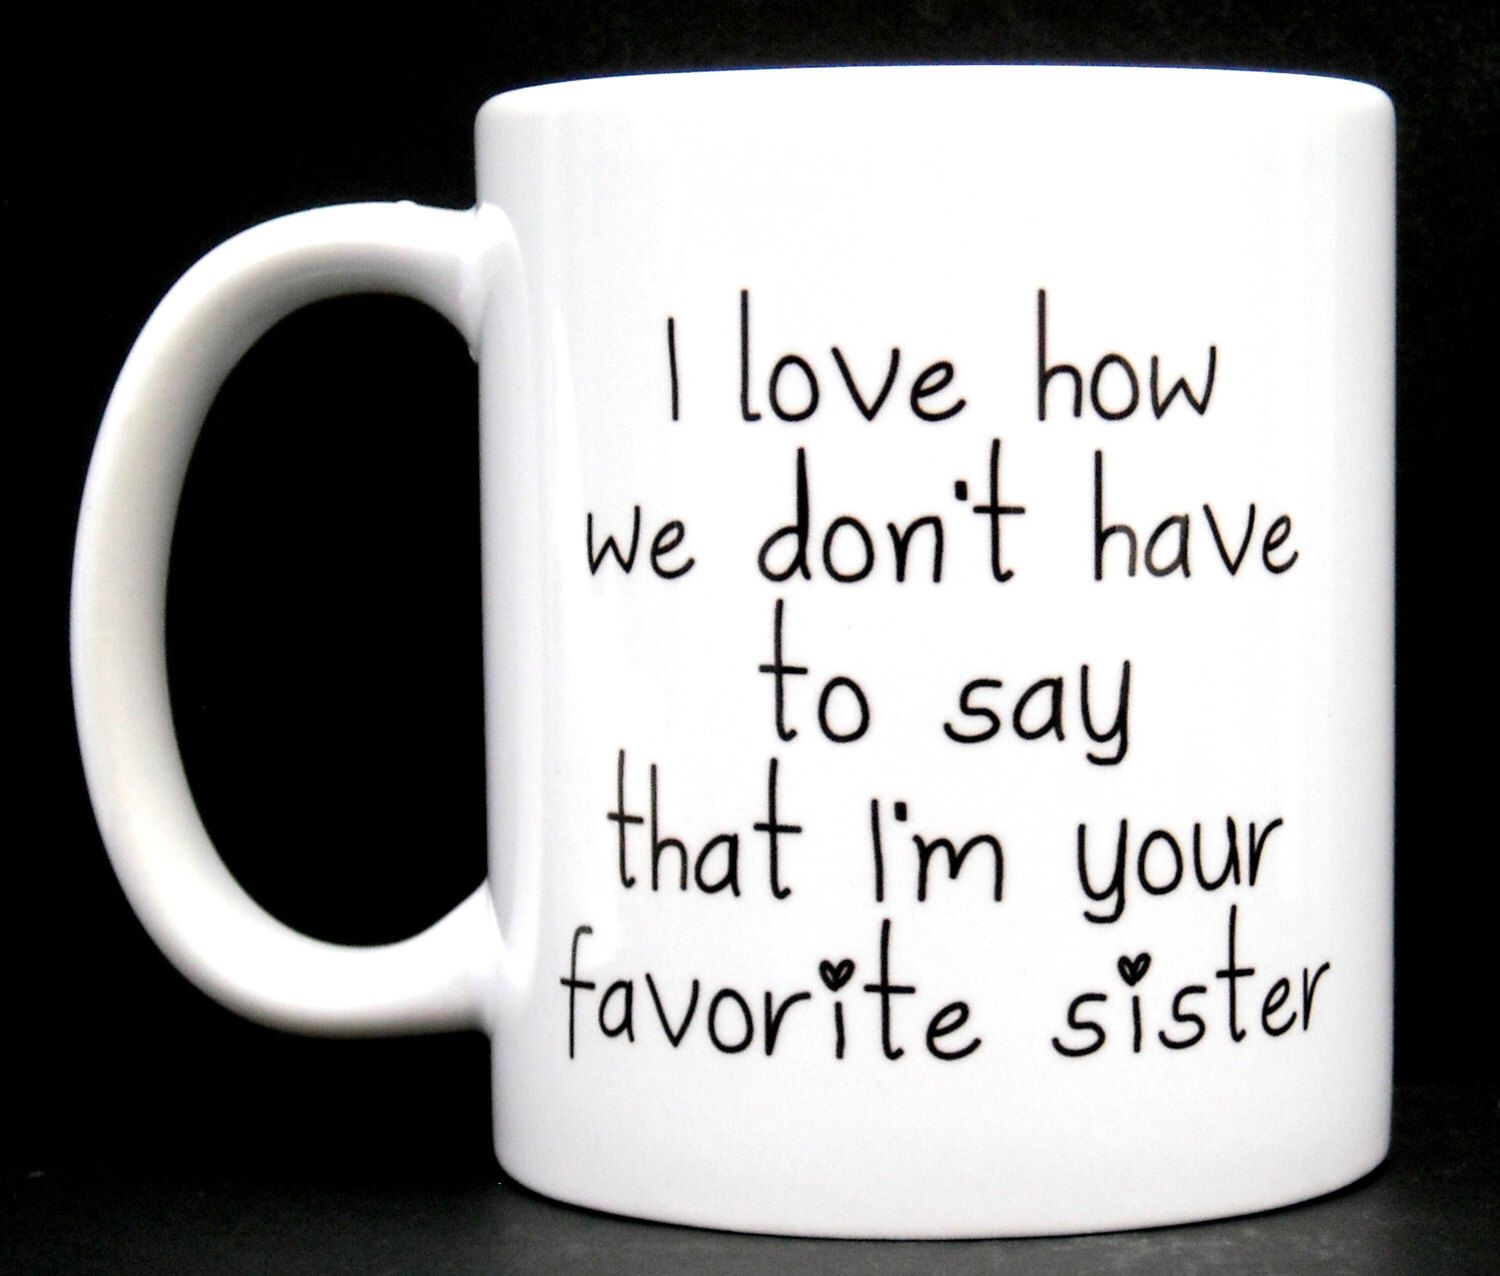 Unique Gifts For Sisters Gift Personalized Gift For Sister Personalized Gifts Funny Sister Gifts For Birthday Sister Gift Funny Gift Coffee #giftsforsister